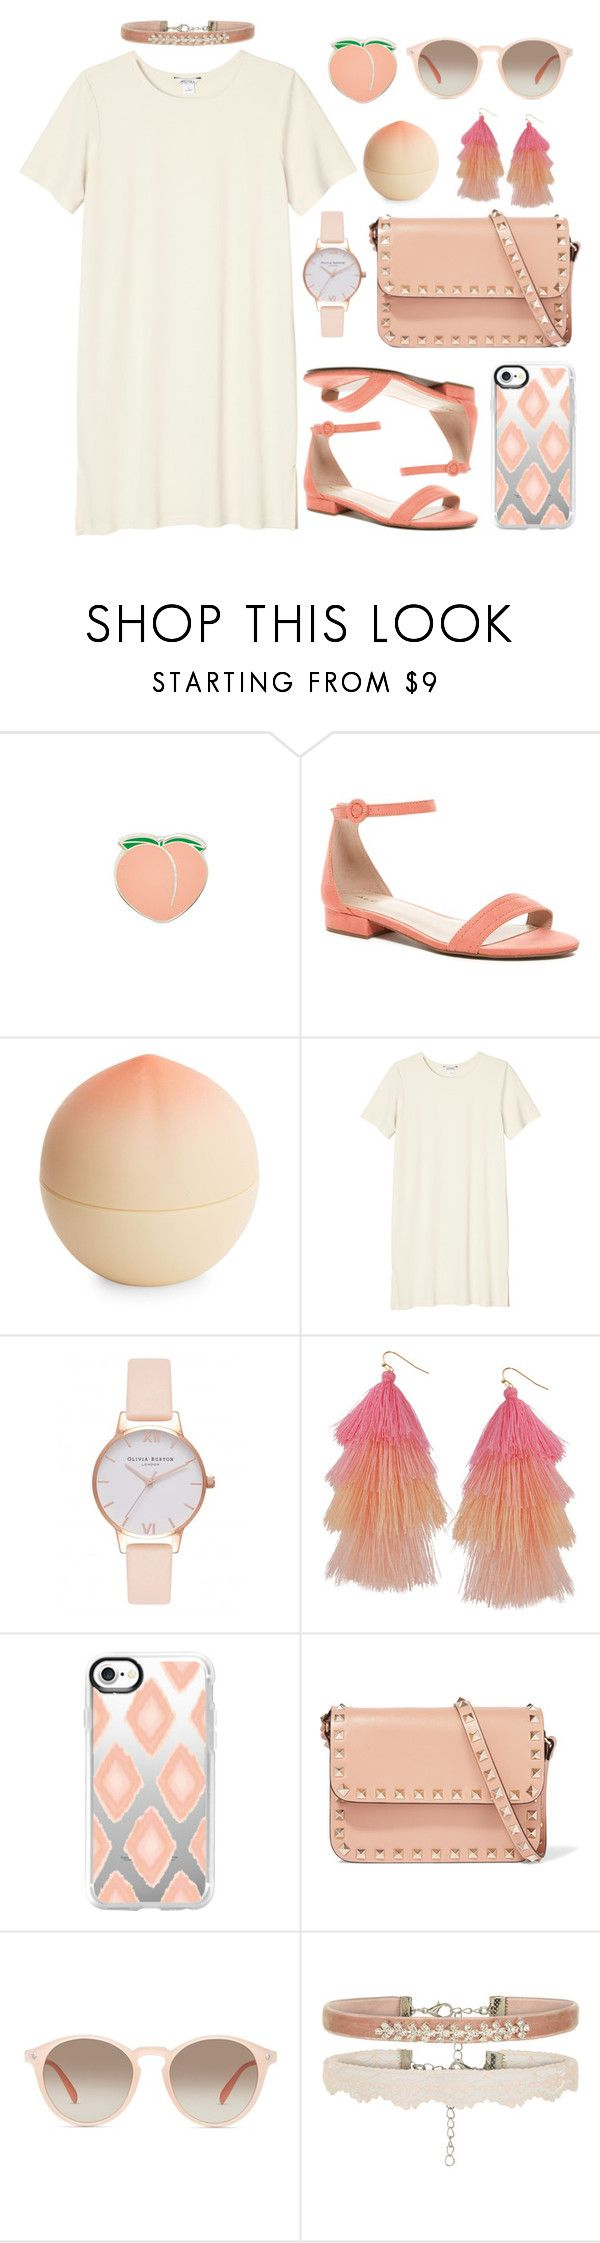 """untitled #43"" by karla-jhoana ❤ liked on Polyvore featuring PINTRILL, ALDO, Tony Moly, Monki, Olivia Burton, Humble Chic, Casetify, Valentino and GlassesUSA"